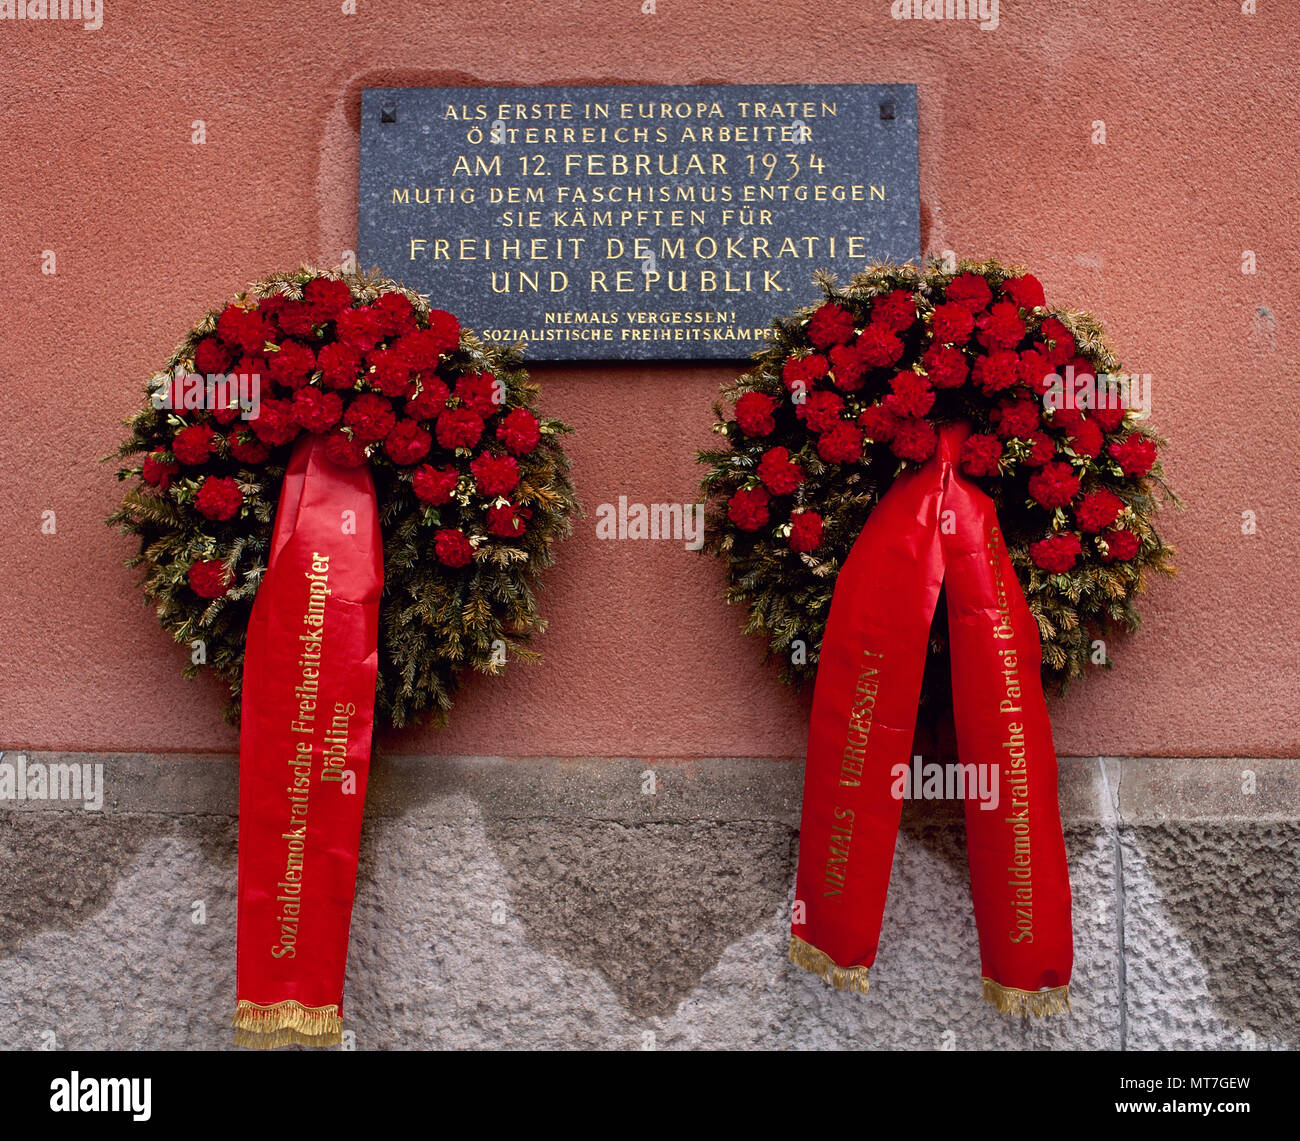 Austrian Civil War or February Uprising. Four days of skirmishes between socialists and the Austrian Army. 12-16 February, 1934. The building Karl Marx Holf, of Period 'Red Vienna' (1918-1934) was a battlefield during the short-lived Austrian civil war. Commemorative plaque on the wall of the building: 'the first to face fascism in Europe were the Austrian workers. They fought for freedom, democracy and republic. We never forget !. Socialists fighters for freedom'. Vienna, Austria. - Stock Image